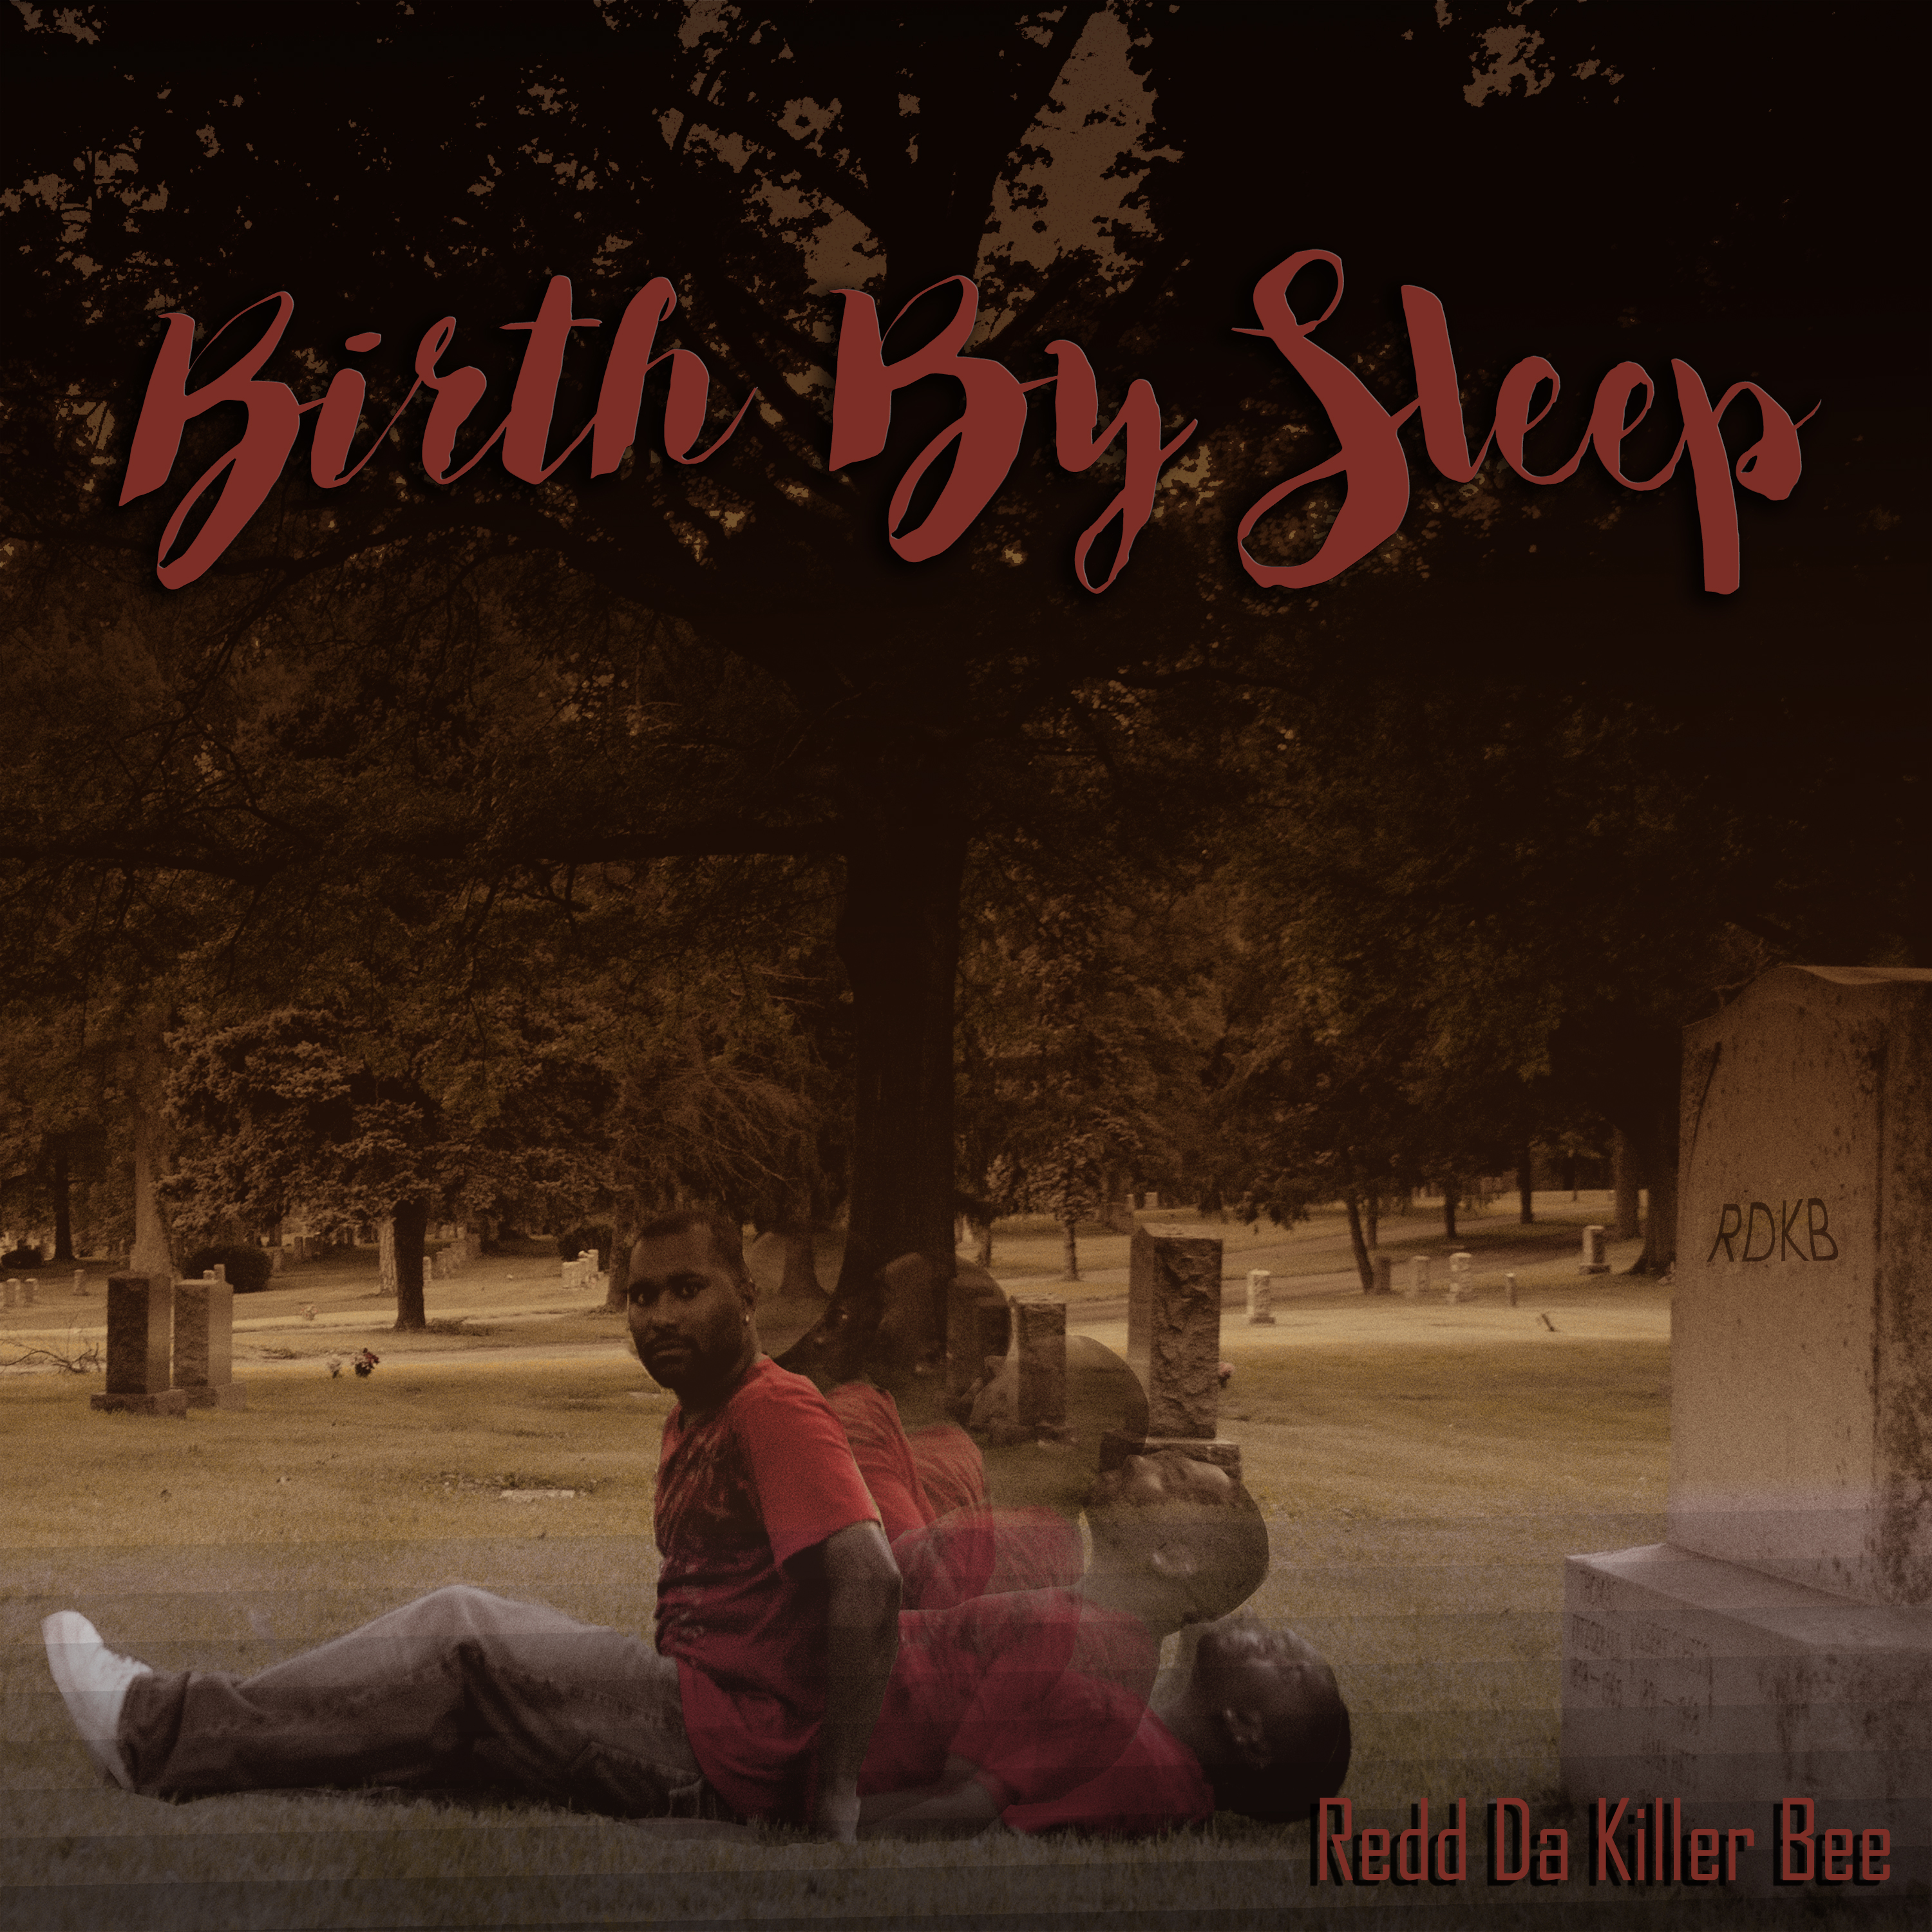 ST. LOUIS' RISING HIP-HOP STAR, REDD DA KILLER BEE, INVITES YOU TO ATTEND HIS 'BIRTH BY SLEEP' WITH THE RELEASE OF HIS LONG-AWAITED SOPHOMORE ALBUM